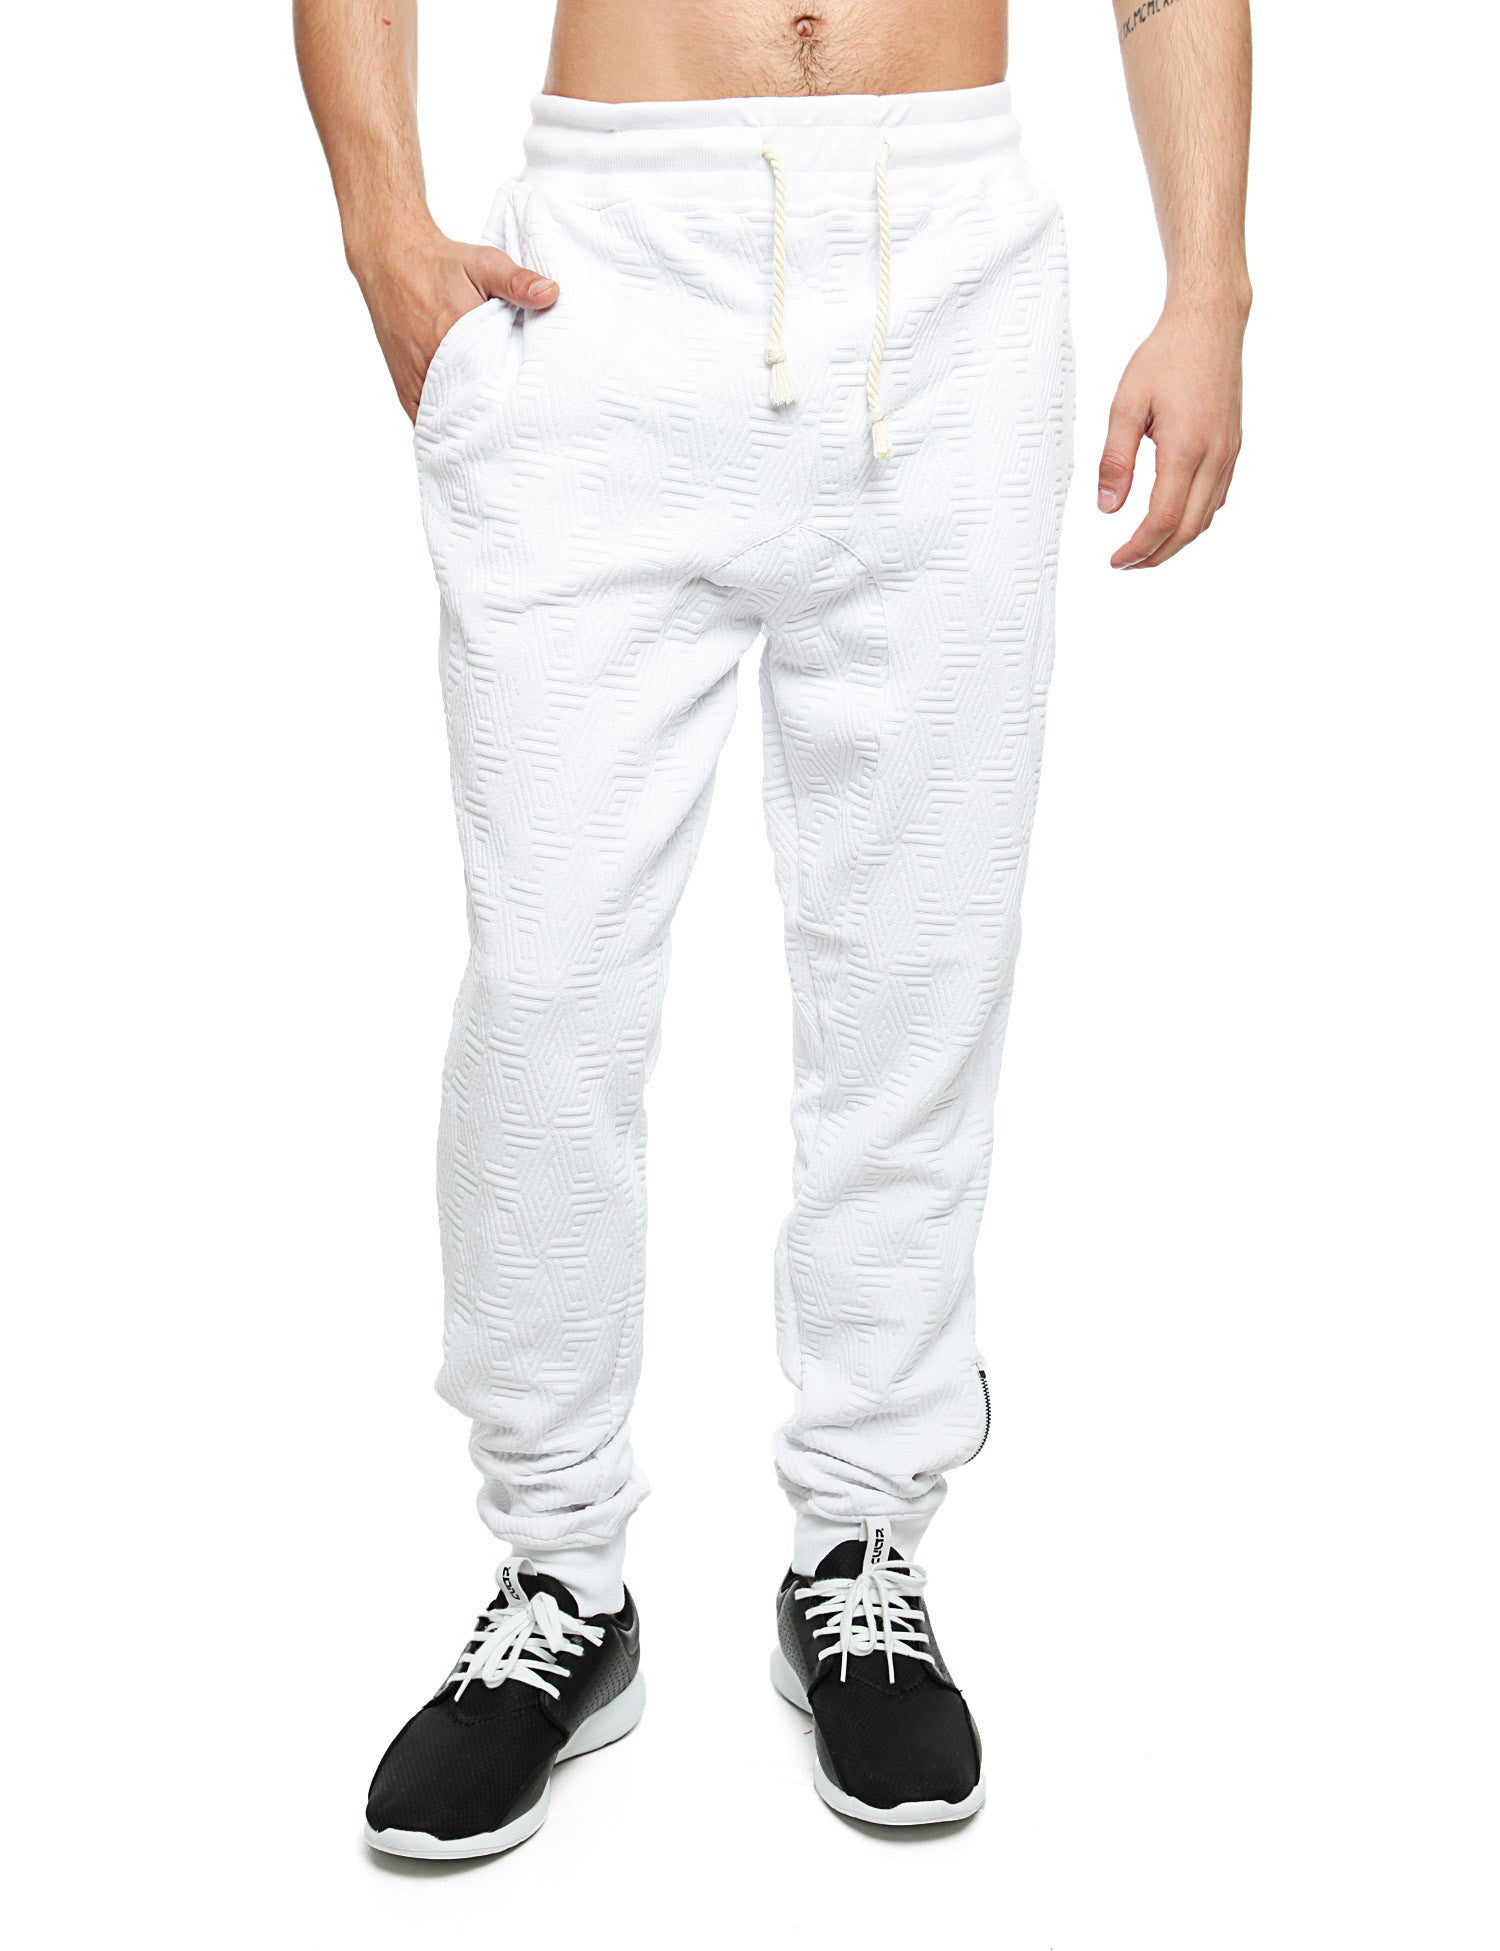 Imperious ?Quilted? Sweatpant FP542 White